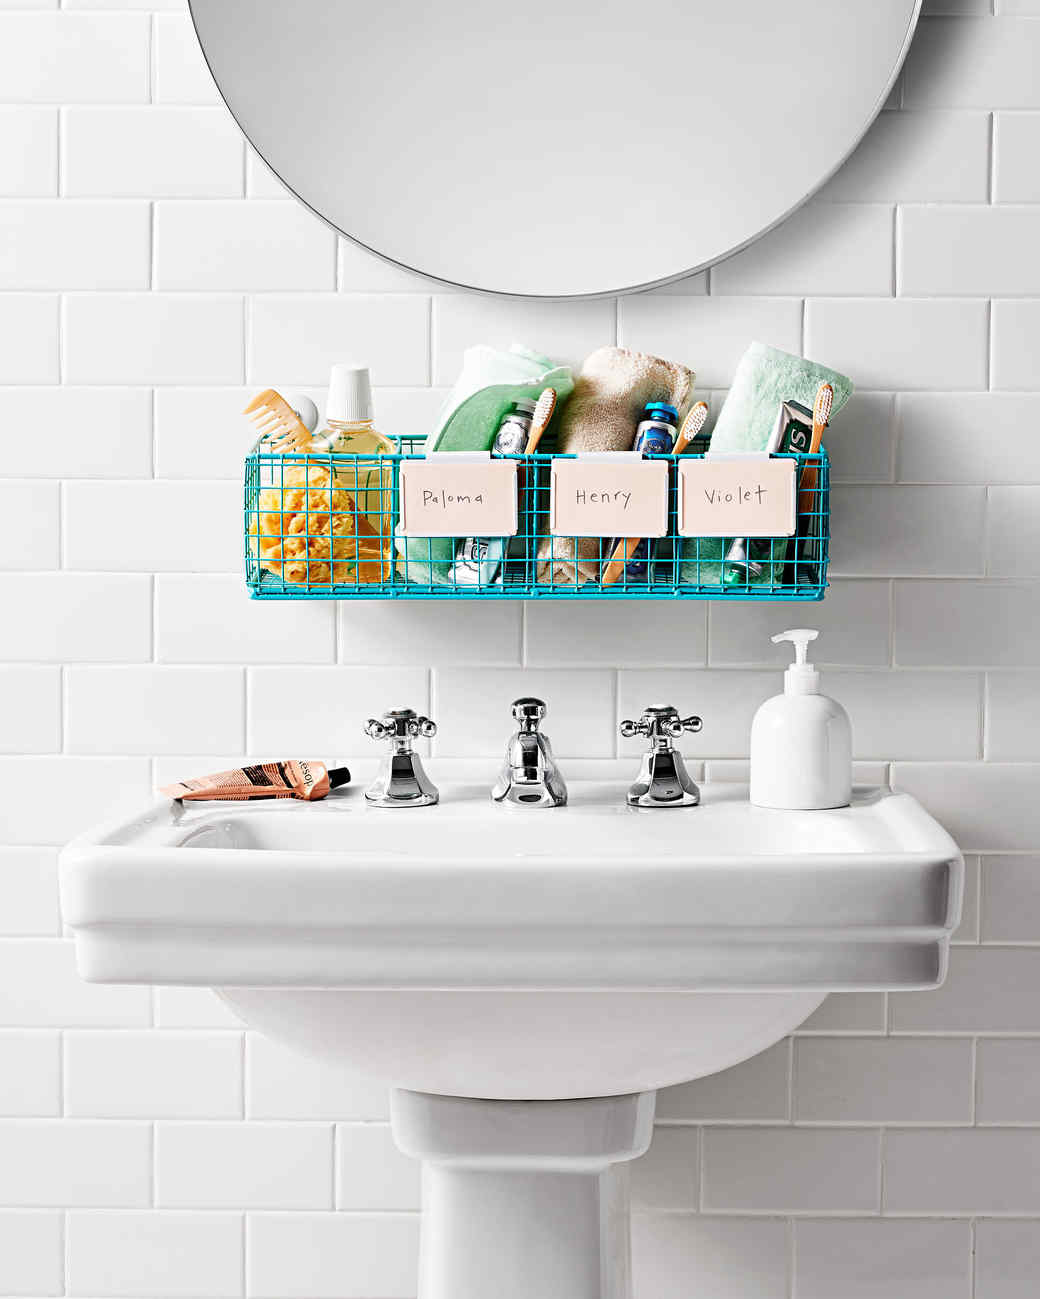 Bathroom Organization Tips | Martha Stewart on sea through bathroom, messy bathroom, pink bathroom, black bathroom, pee no bathroom, wet bathroom, walk through bathroom, pretty bathroom,